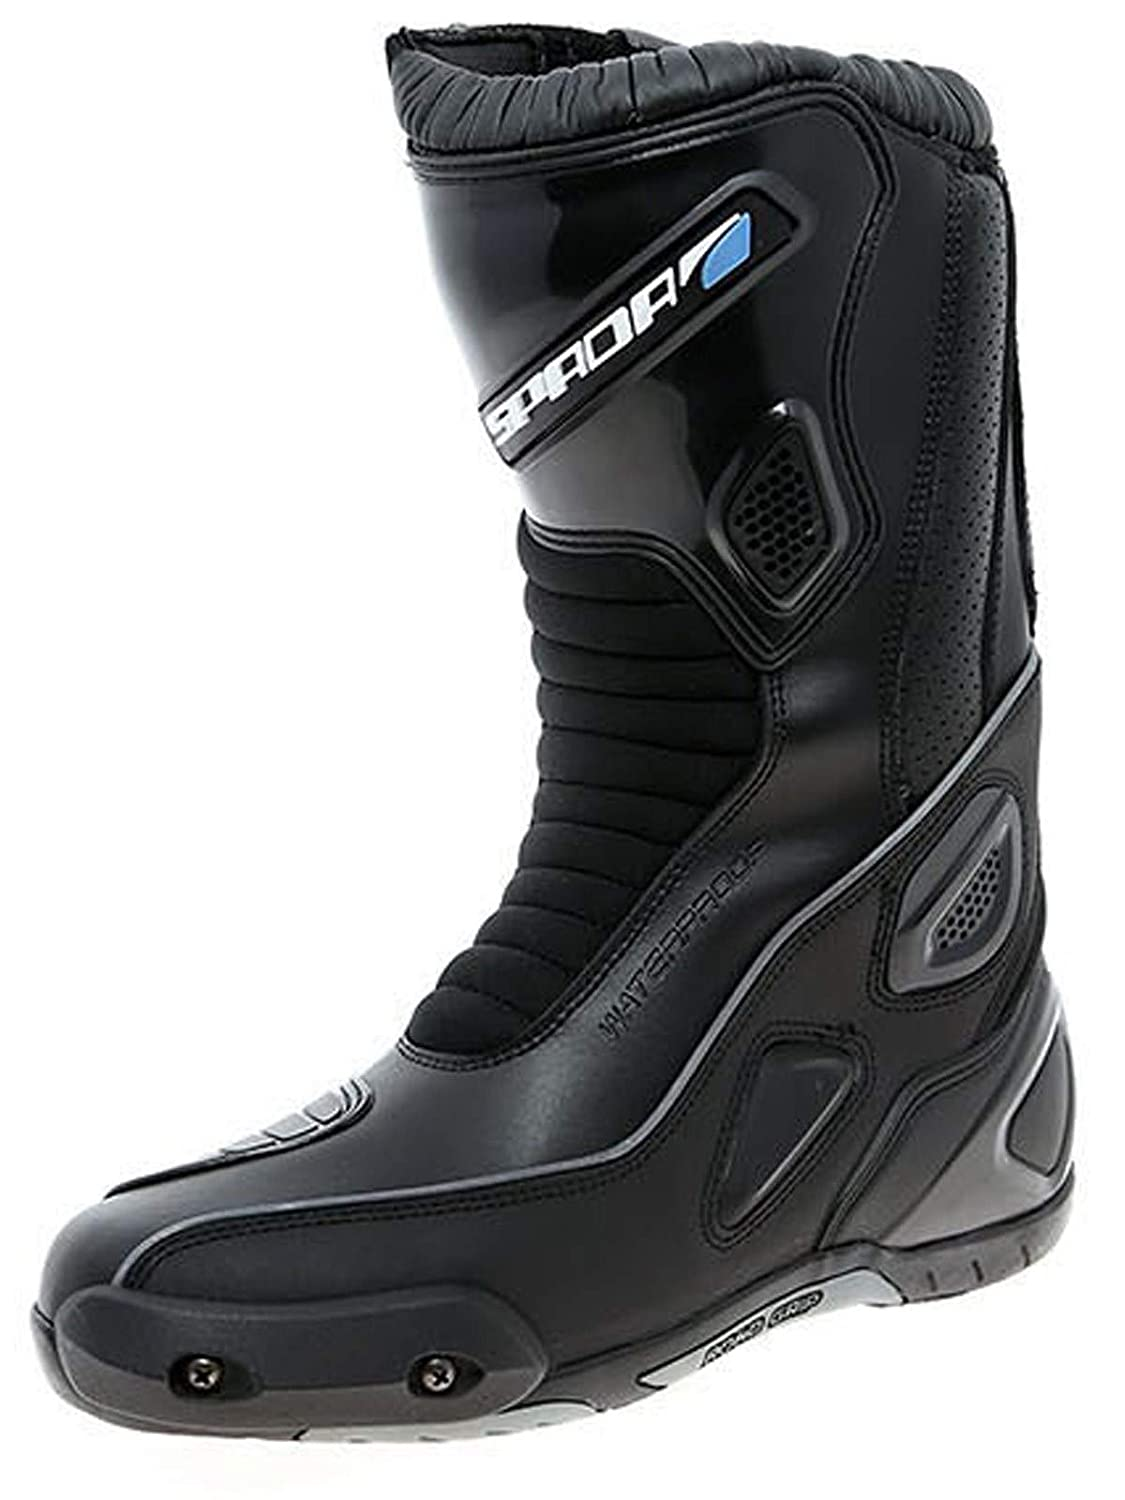 RST ADVENTURE II 1656 WATERPROOF BOOTS Motorcycle Touring Urban Sports Off Road CE Approved Boots